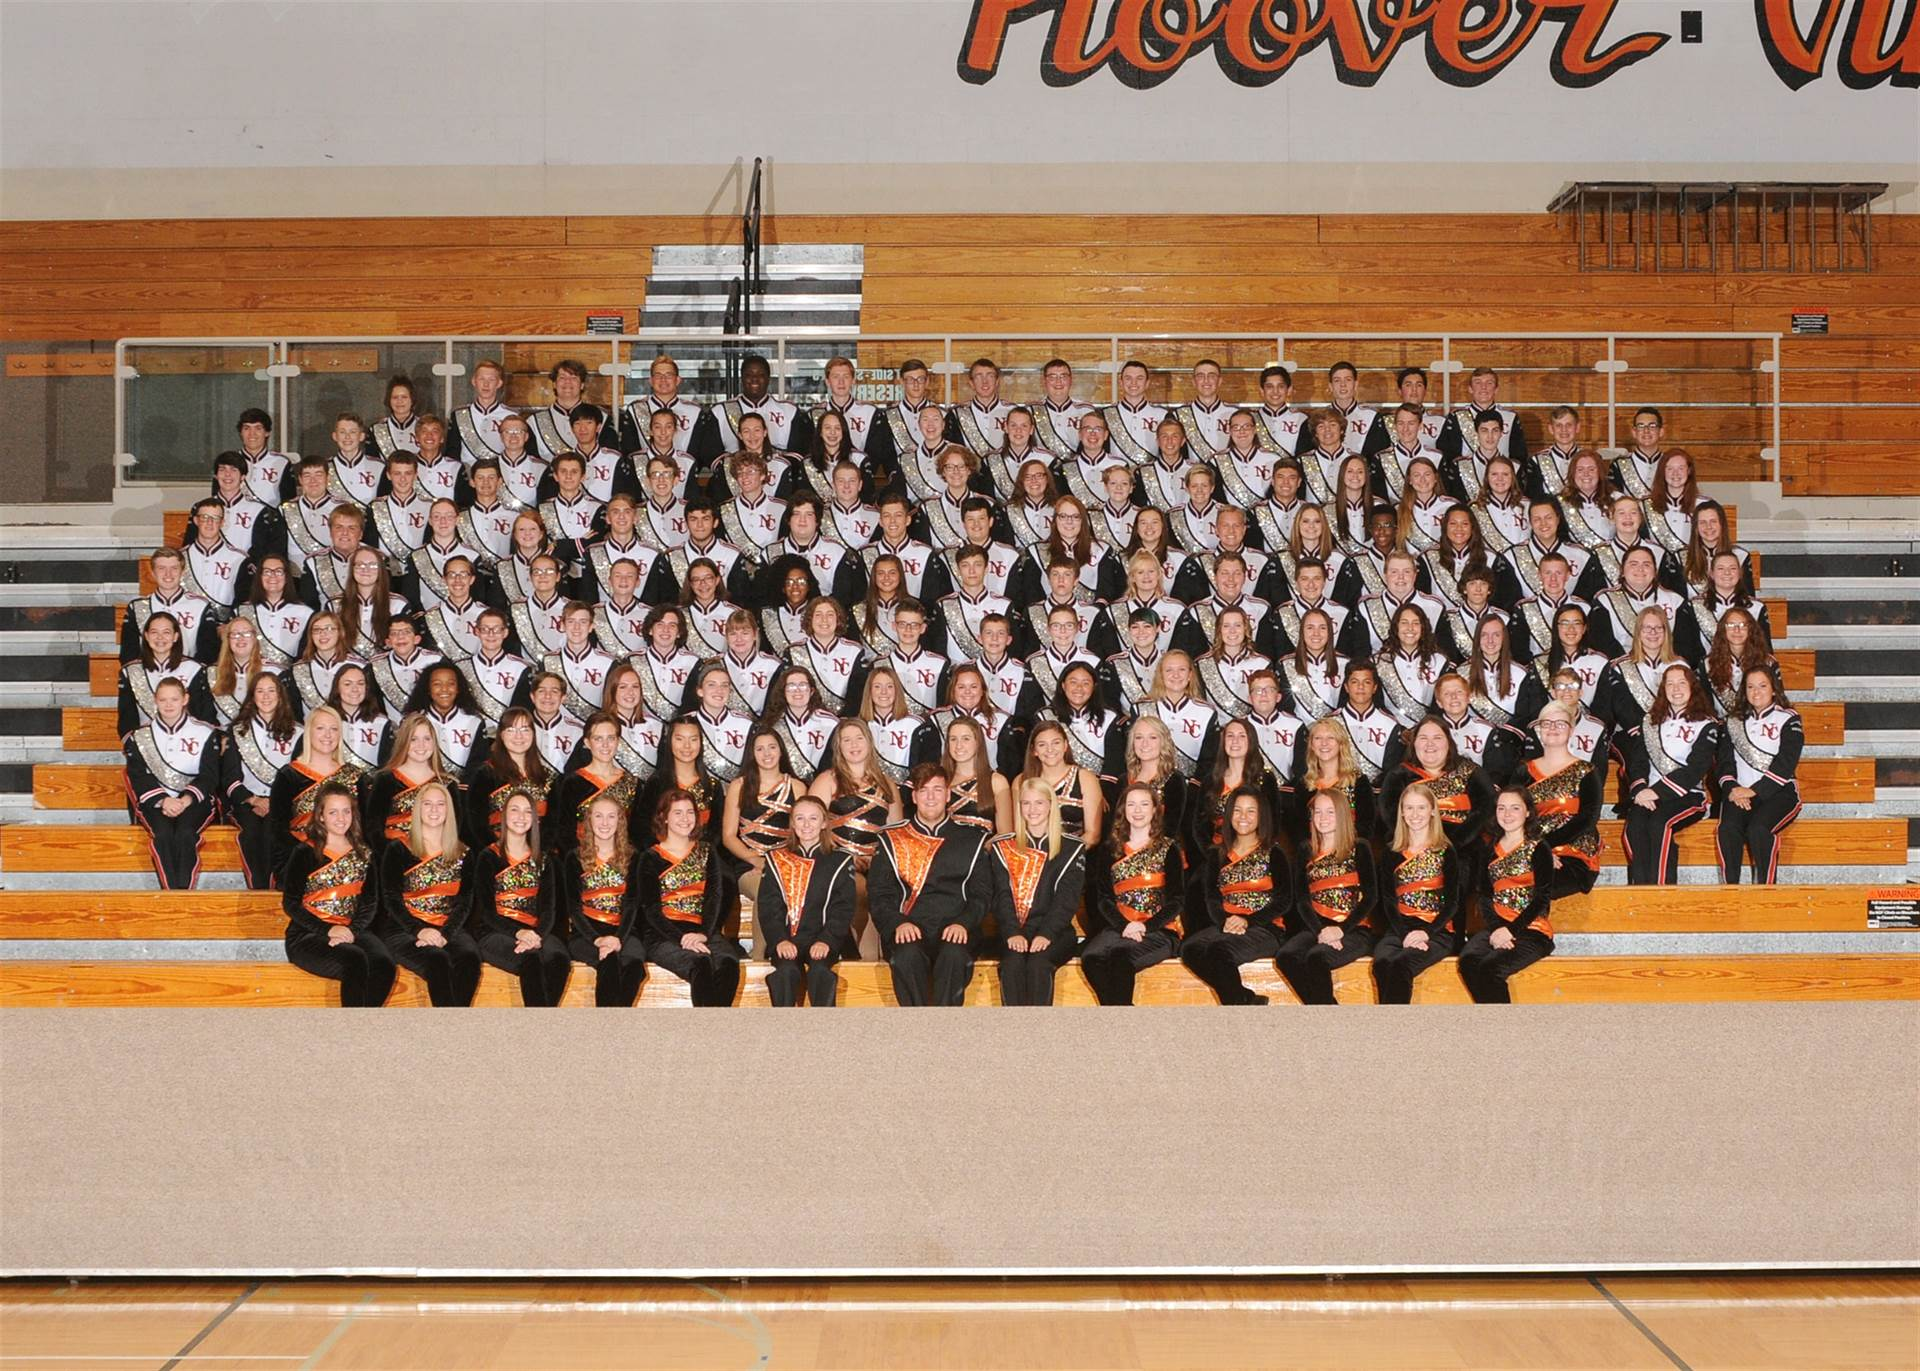 2017 Hoover Marching Band